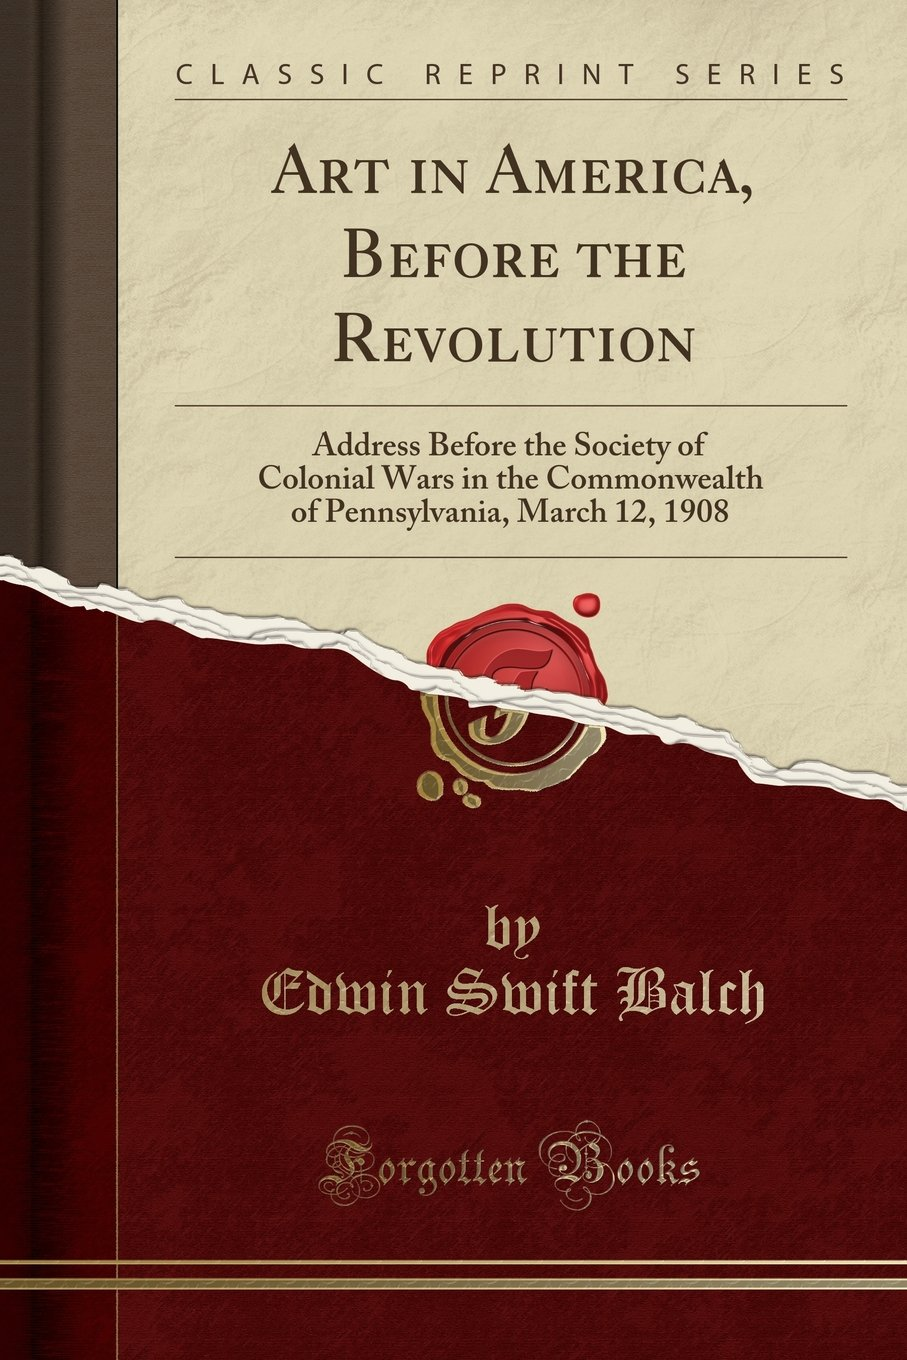 Download Art in America, Before the Revolution: Address Before the Society of Colonial Wars in the Commonwealth of Pennsylvania, March 12, 1908 (Classic Reprint) ebook